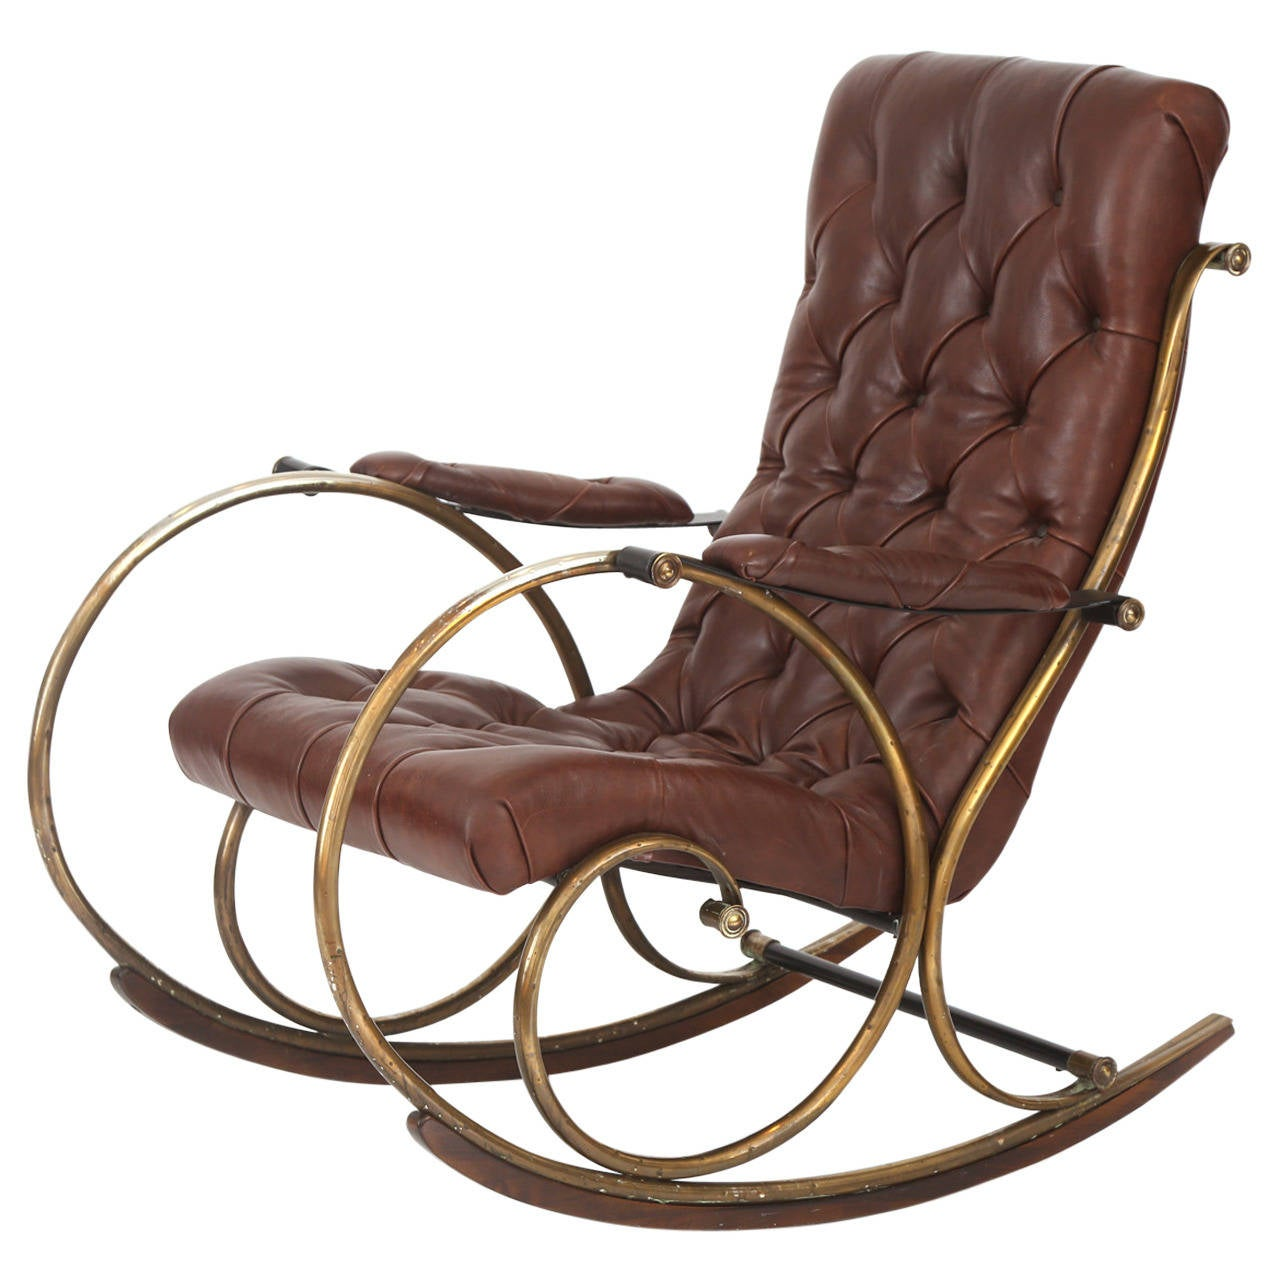 Leather Rocking Chair Leather Brass And Wood Rocking Chair By Woodard